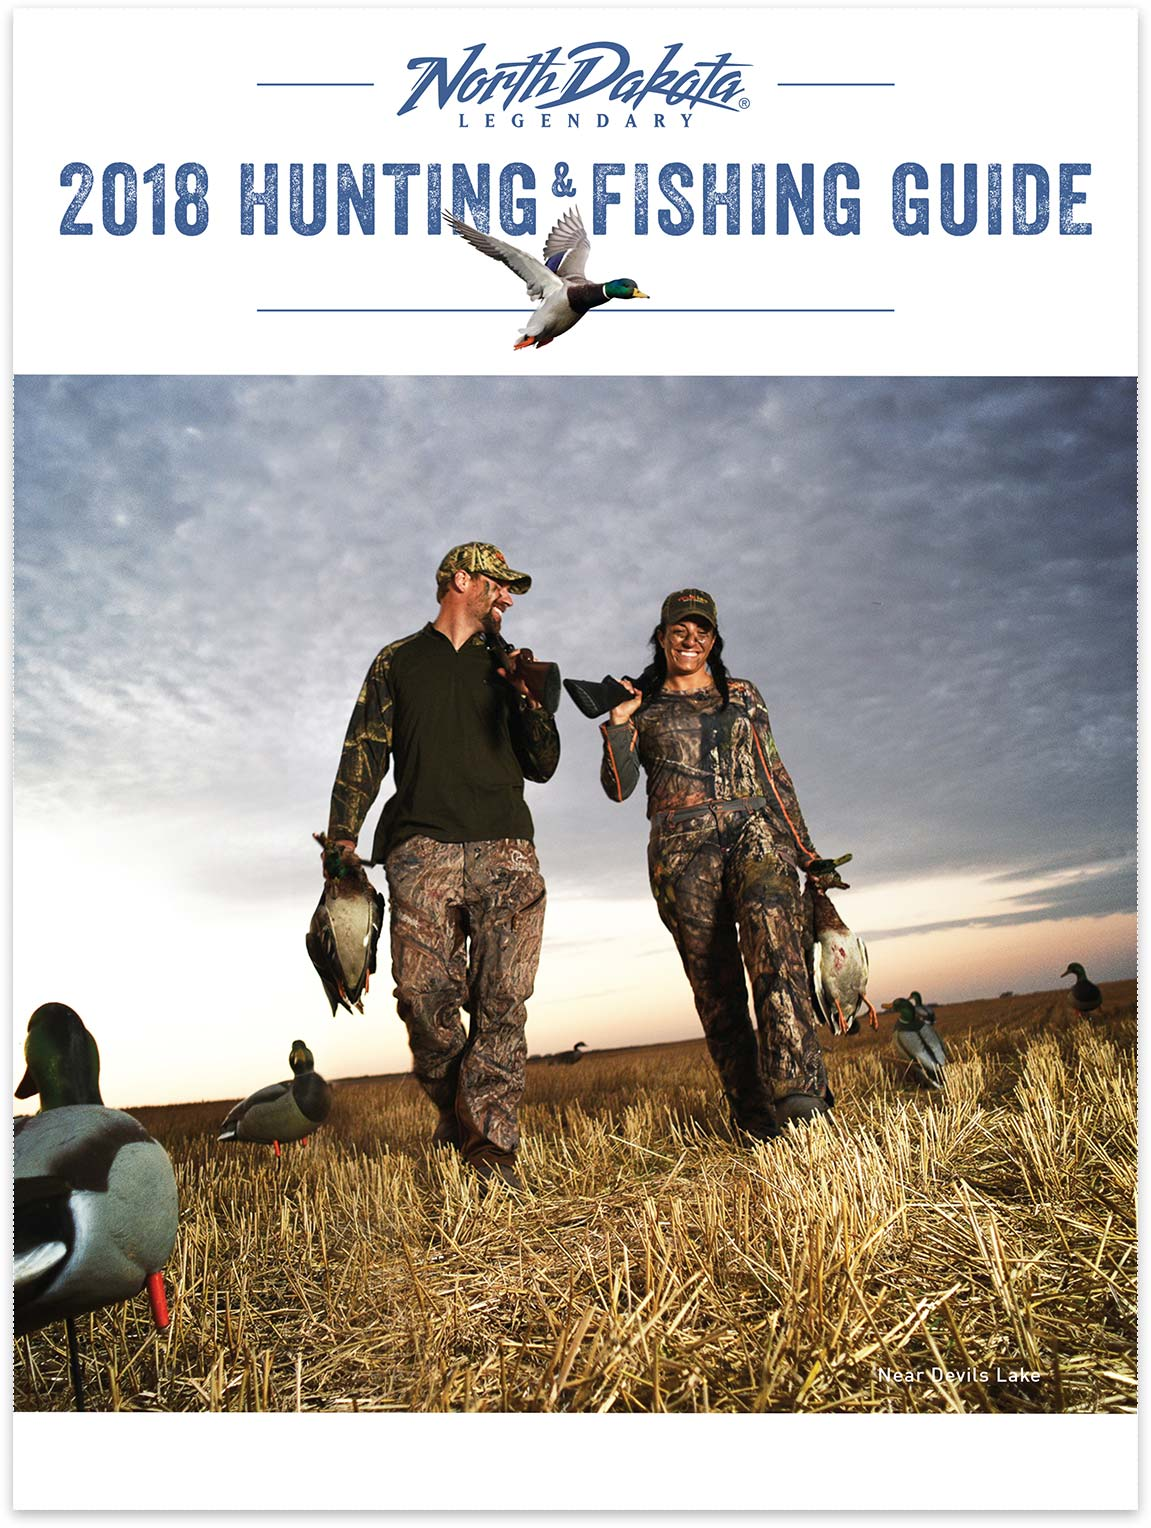 North Dakota Hunting and Fishing Guide